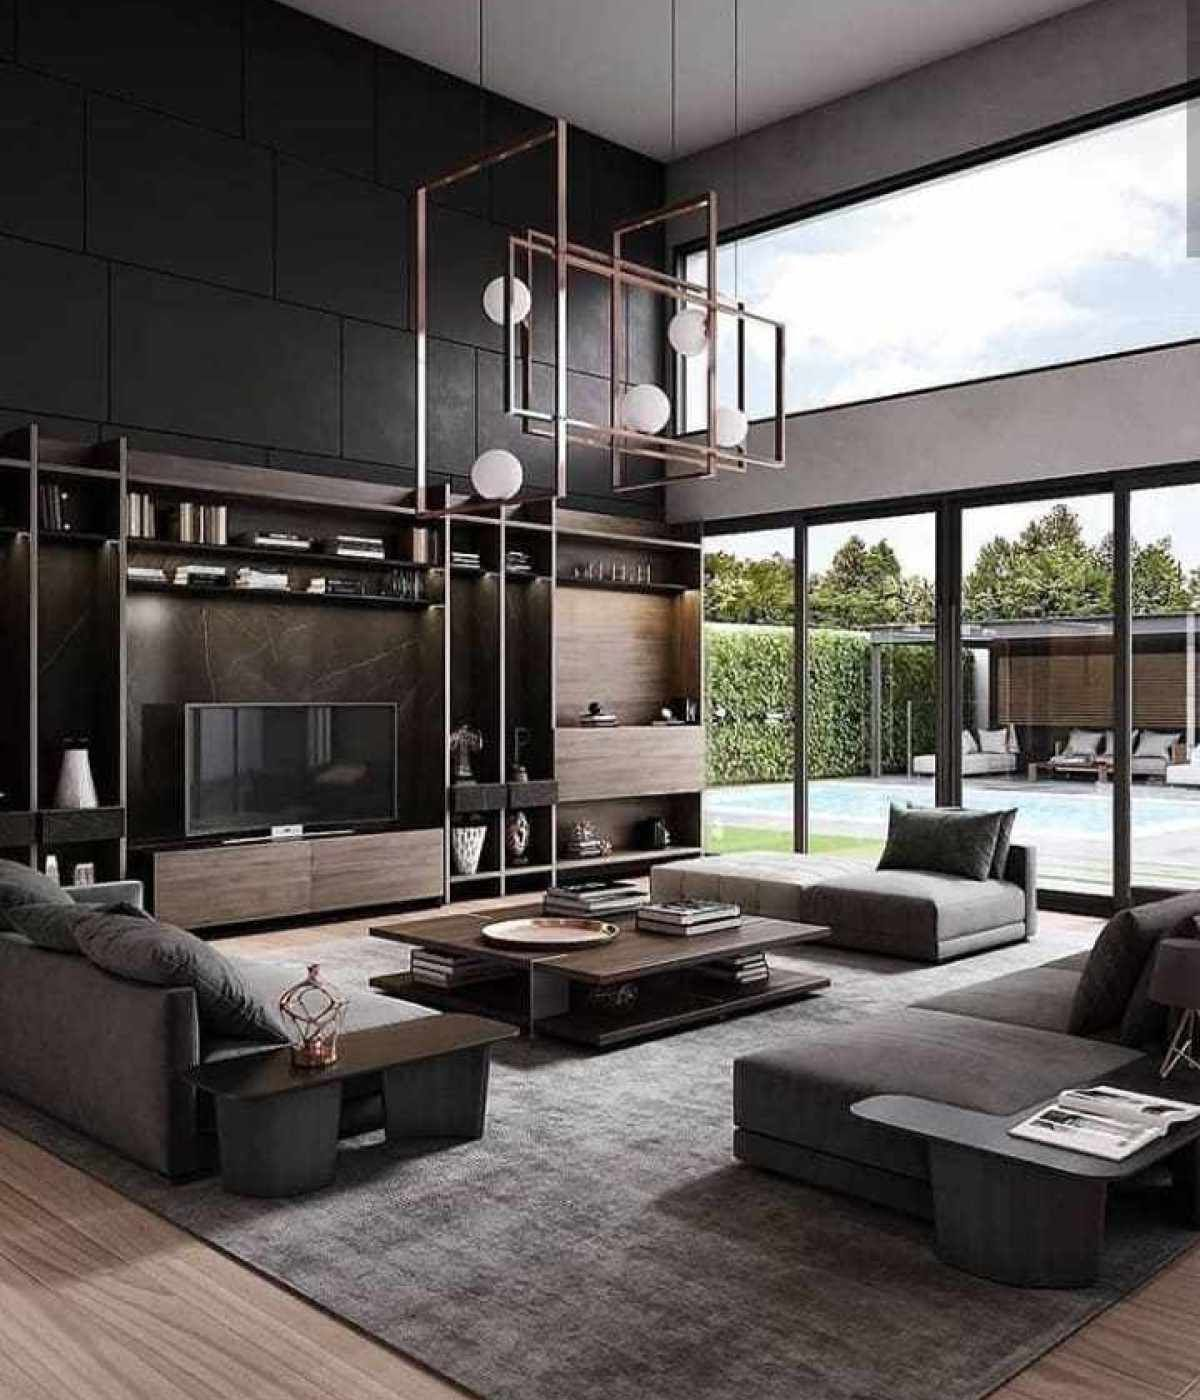 10 Minimalist Living Room Ideas That Will Inspire You To Declutter Modern Grey Living Room Loft Interiors Living Room Design Modern Modern home decor living room